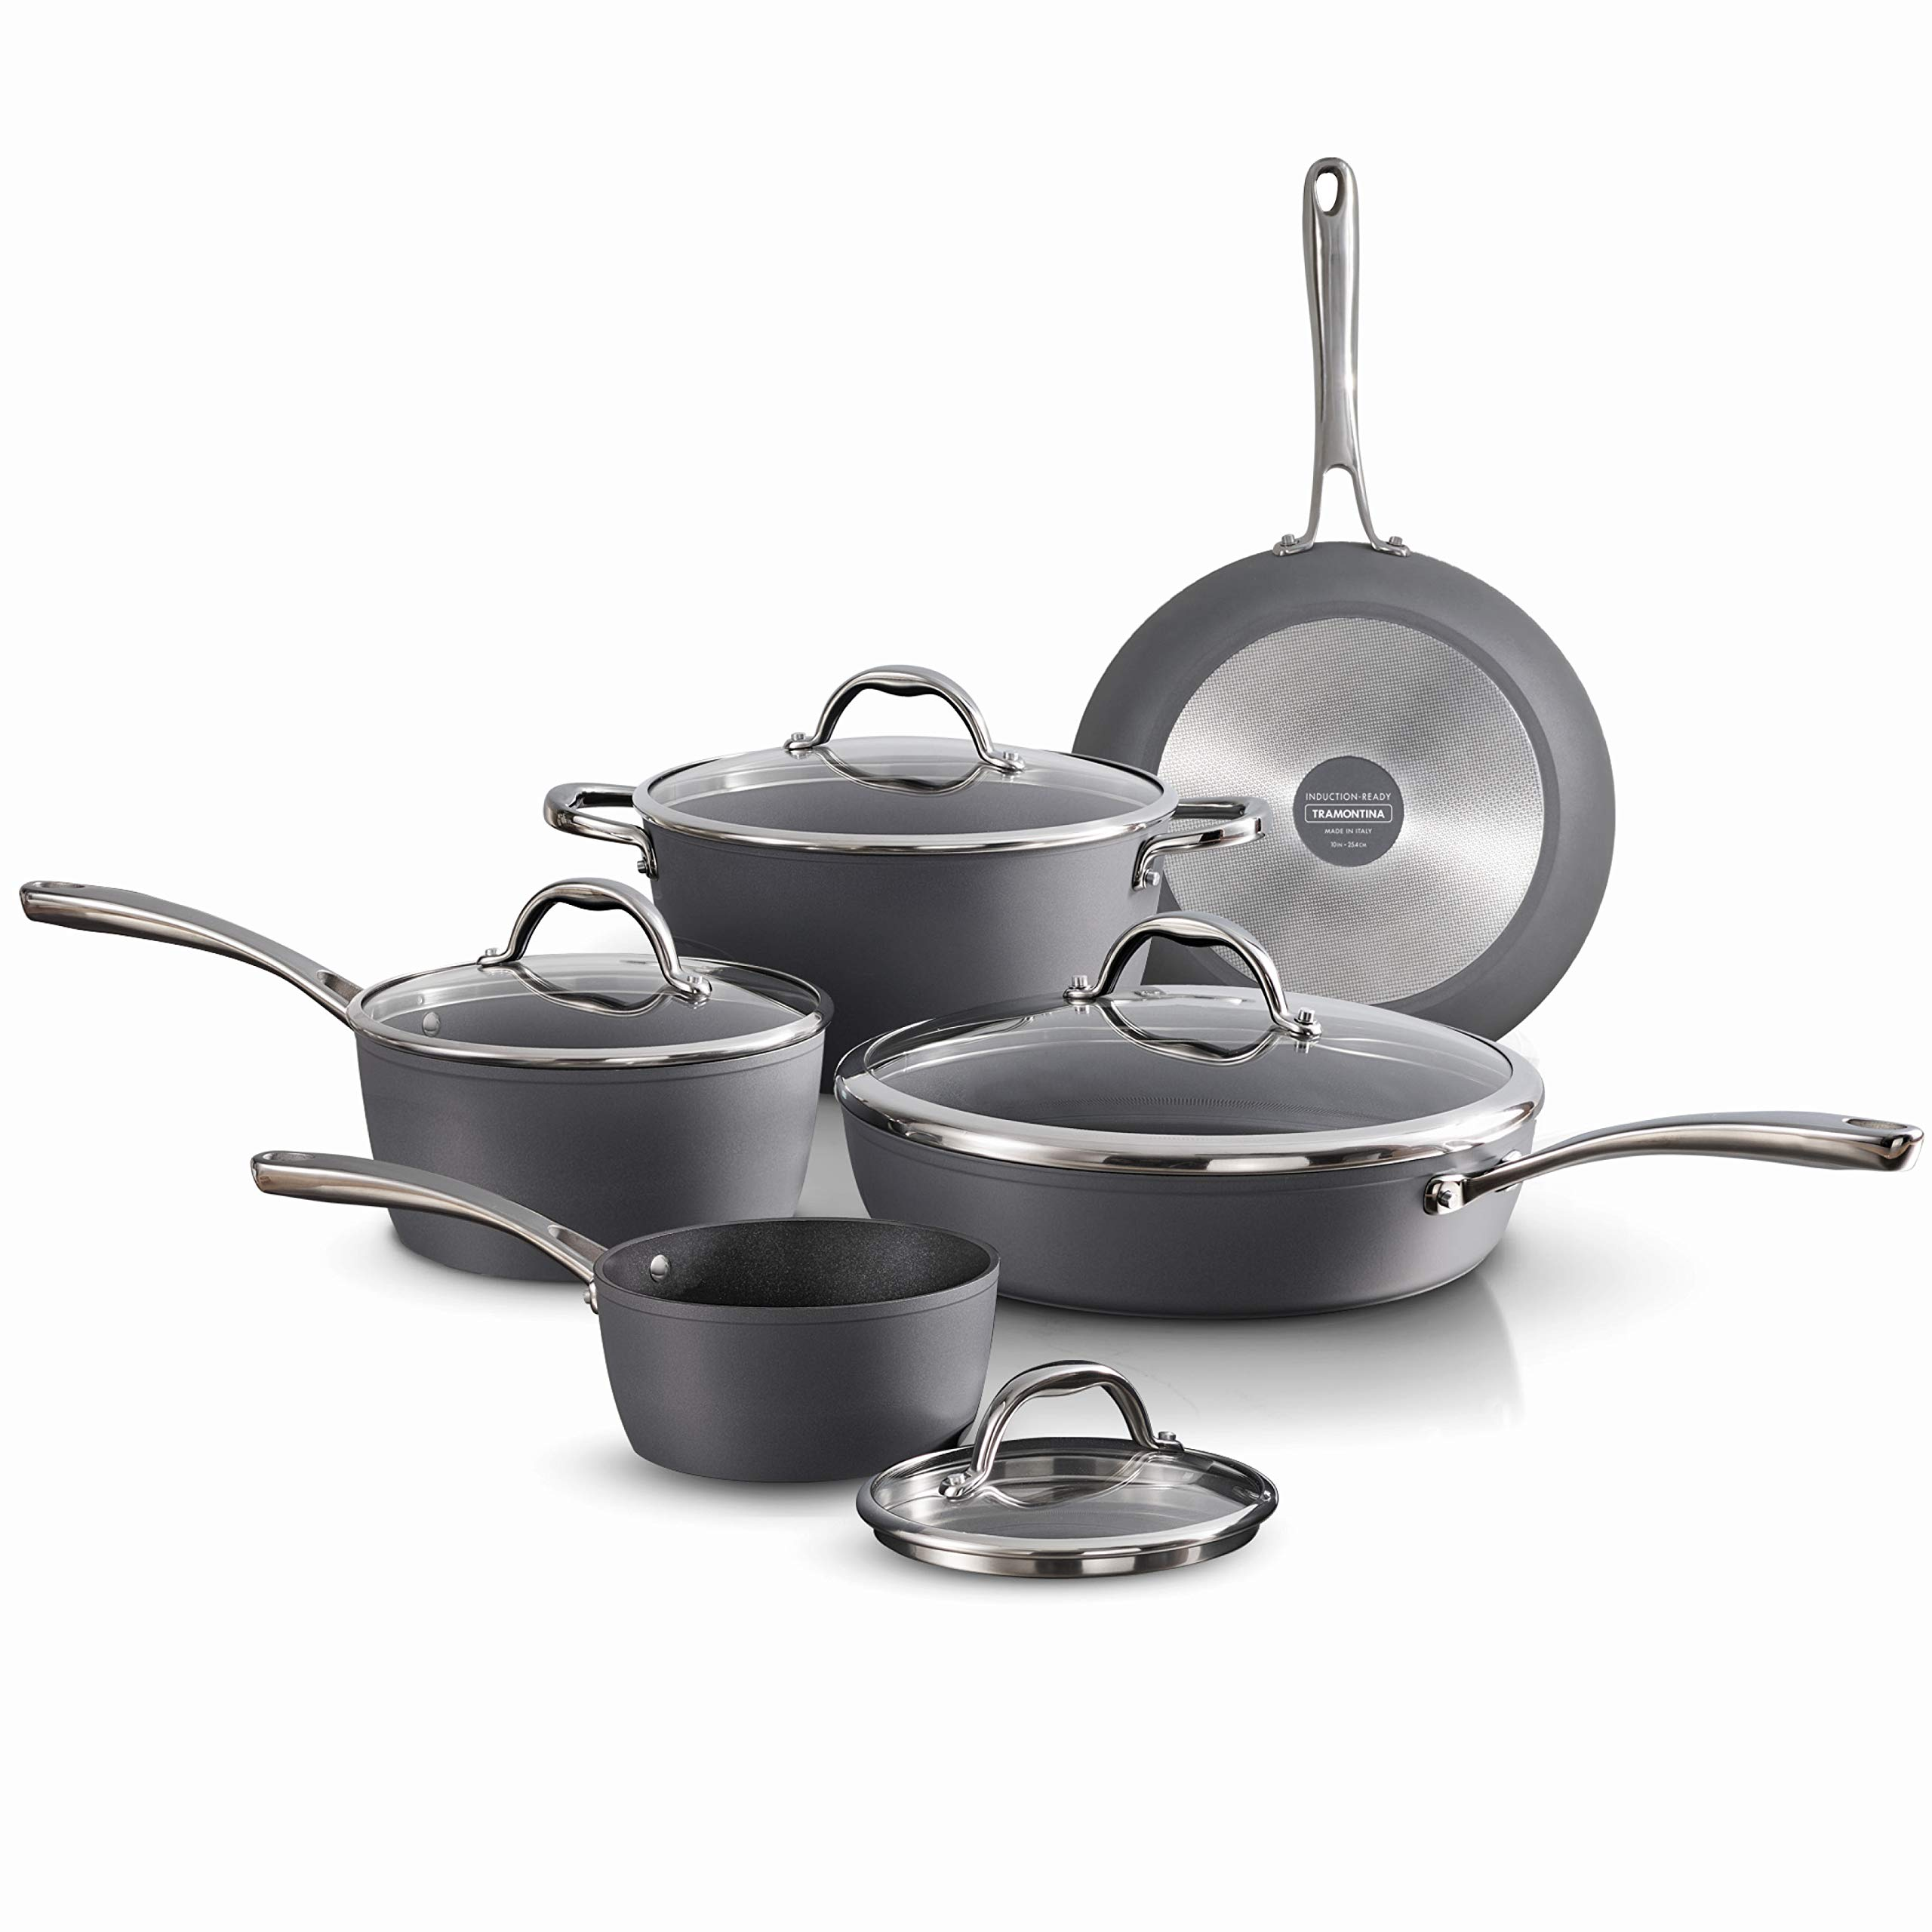 Tramontina 80110/225DS Gourmet Induction Aluminum Nonstick Made in Italy, Slate Gray 9-Piece Cookware Set,